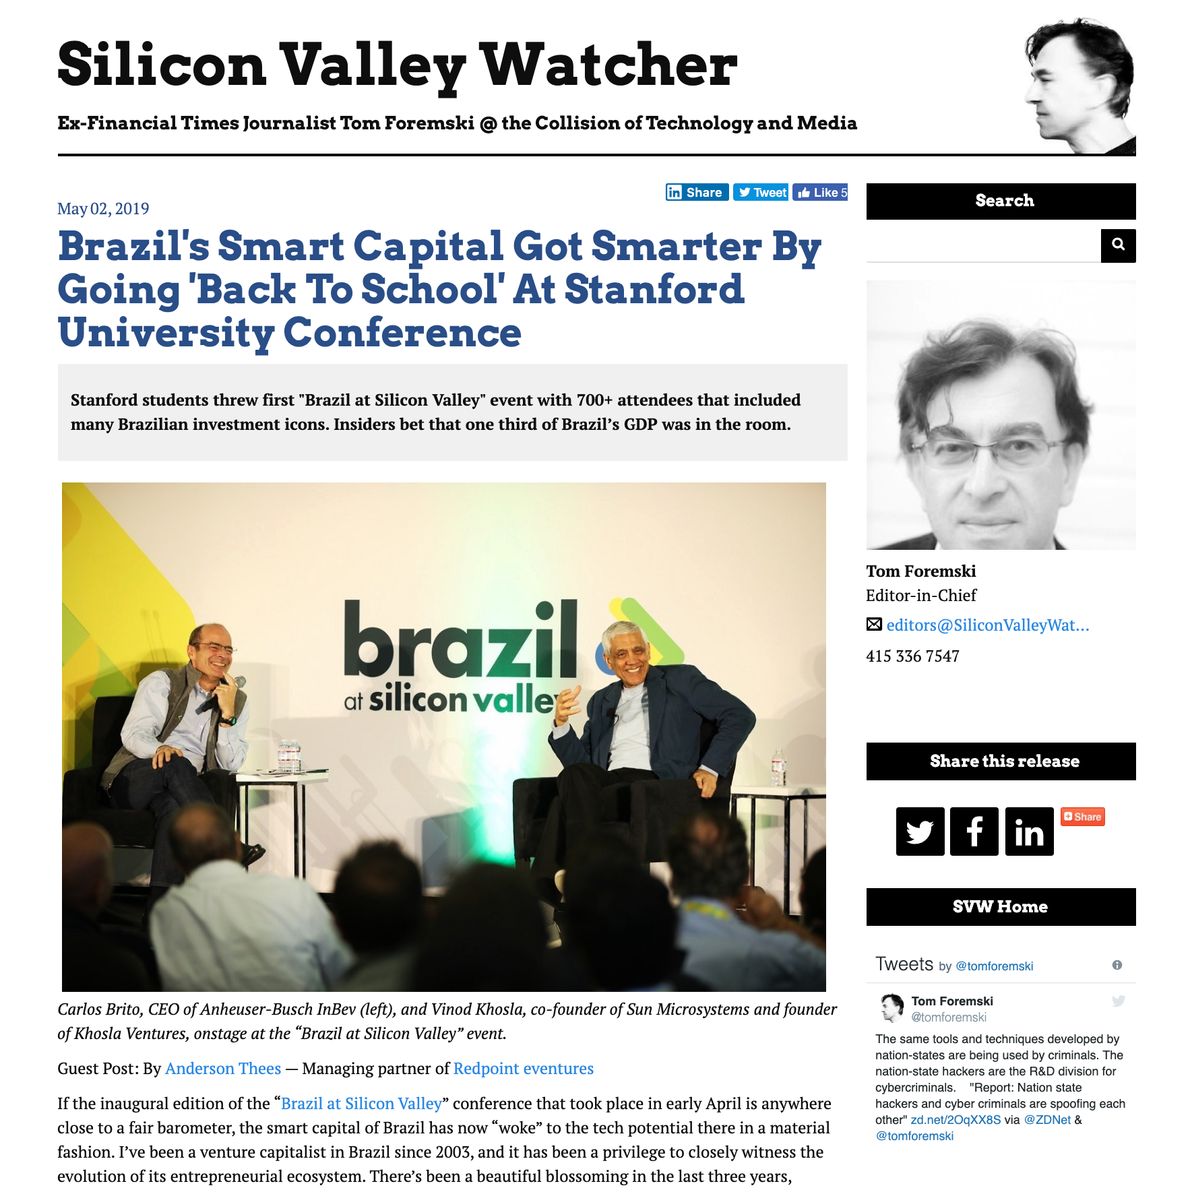 Anderson Thees guest post in Silicon Valley Watcher.